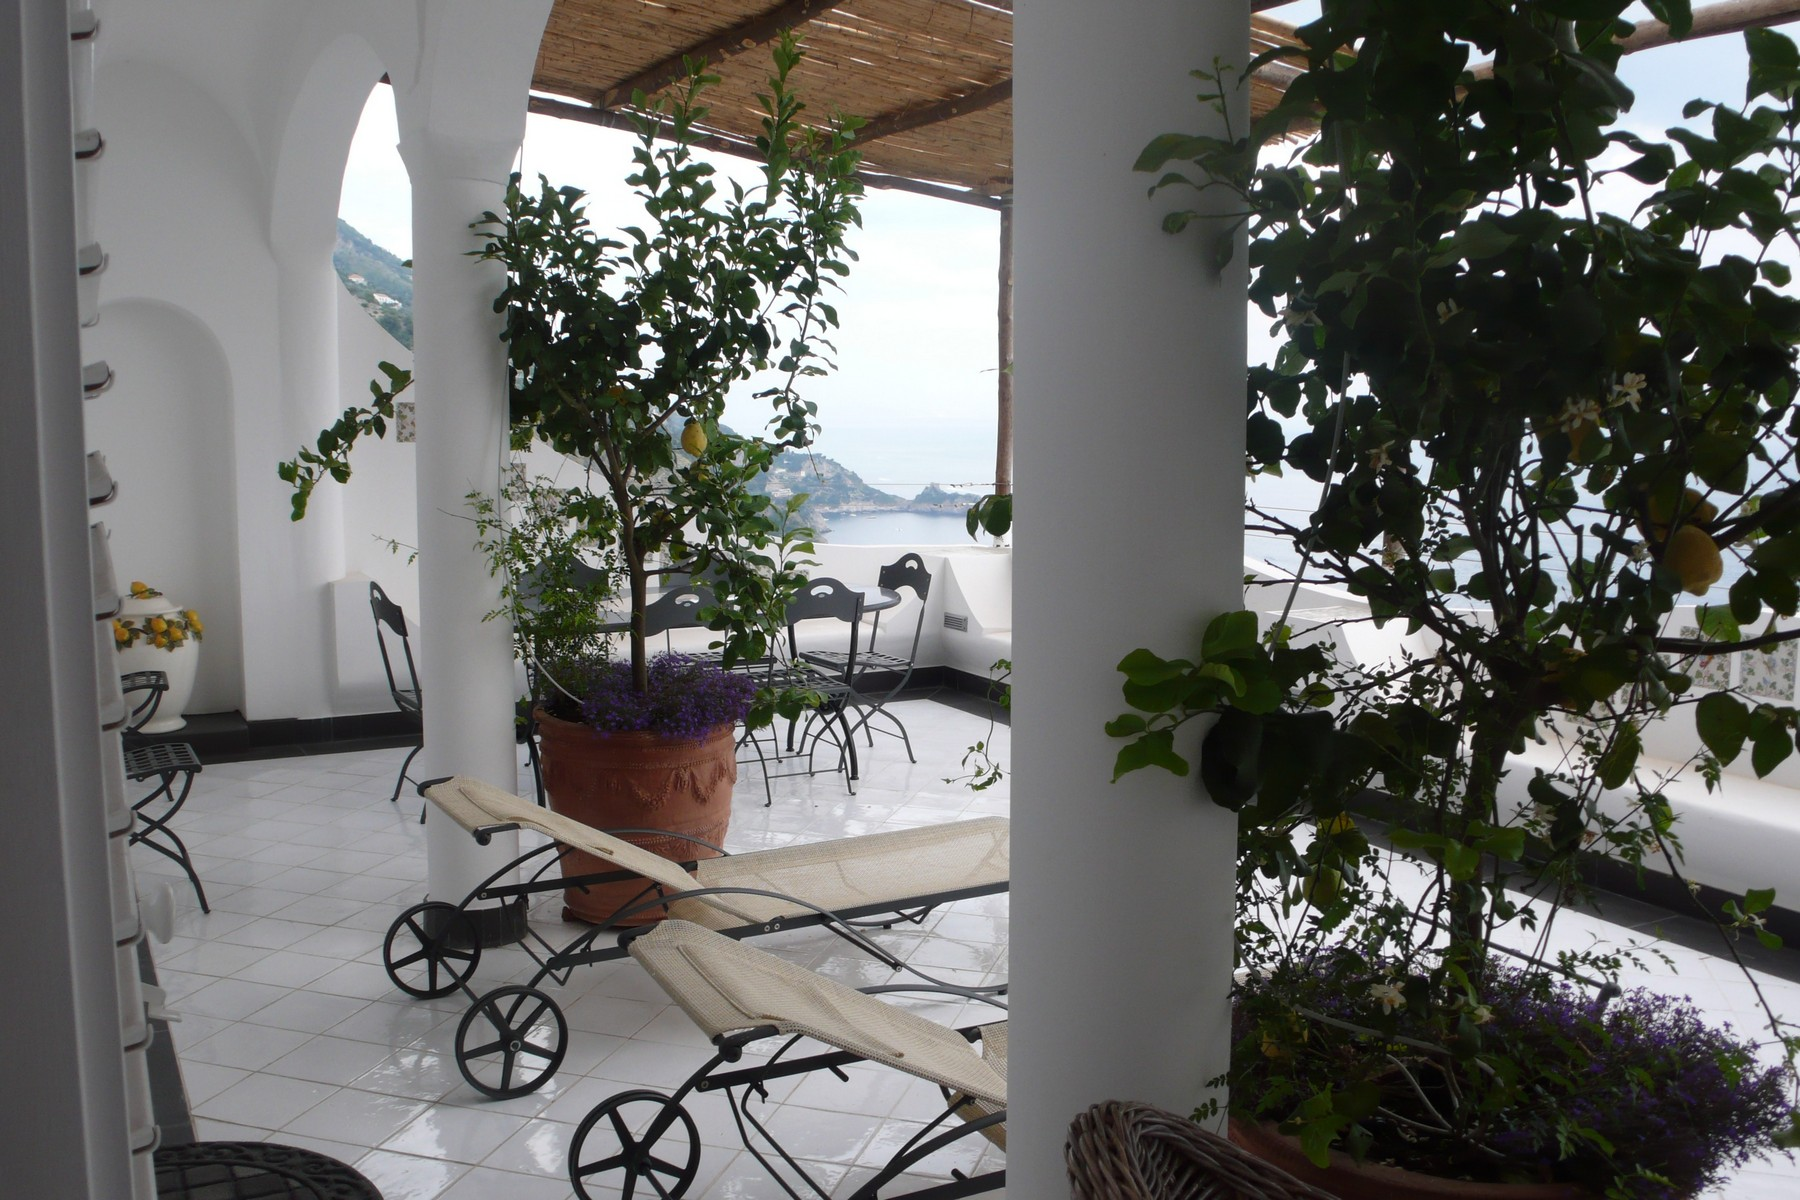 Additional photo for property listing at Beautiful property overlooking the sea in Praiano Via Costantinopoli Praiano, Salerno 84010 Italien